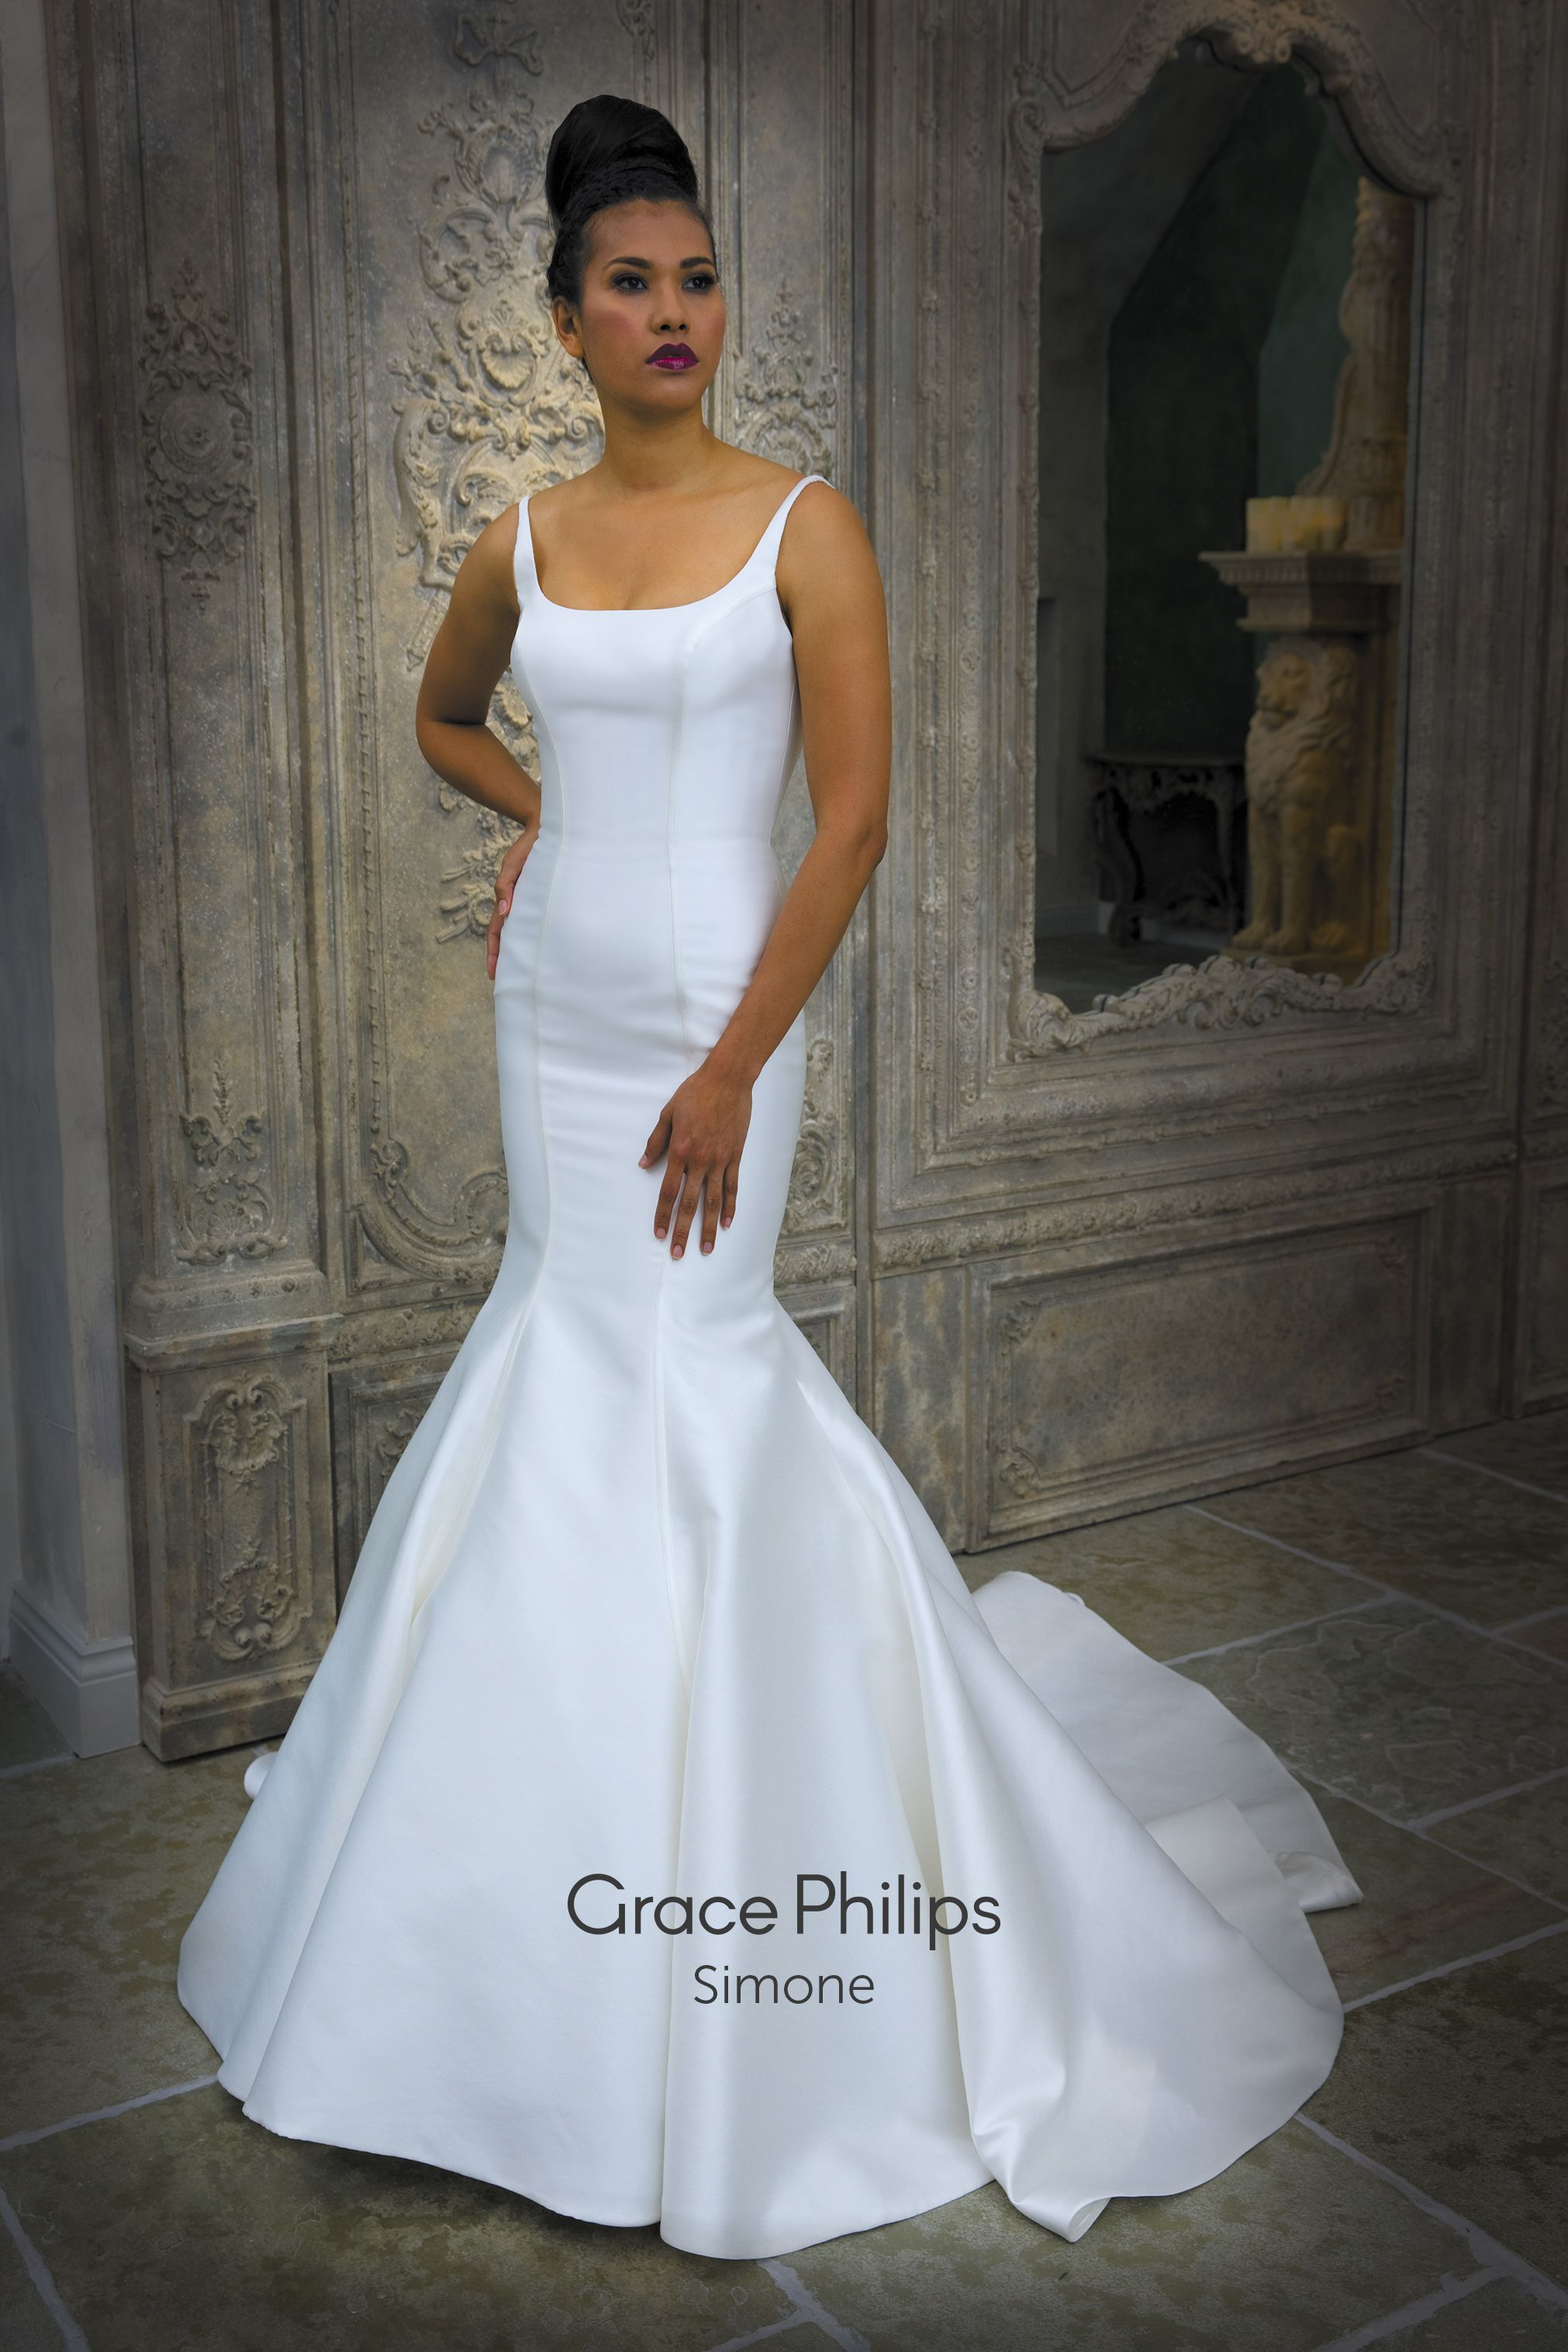 A Tailored Mikado Fishtail Wedding Dress With Simple Seam Detailing And Two Metre Long Train